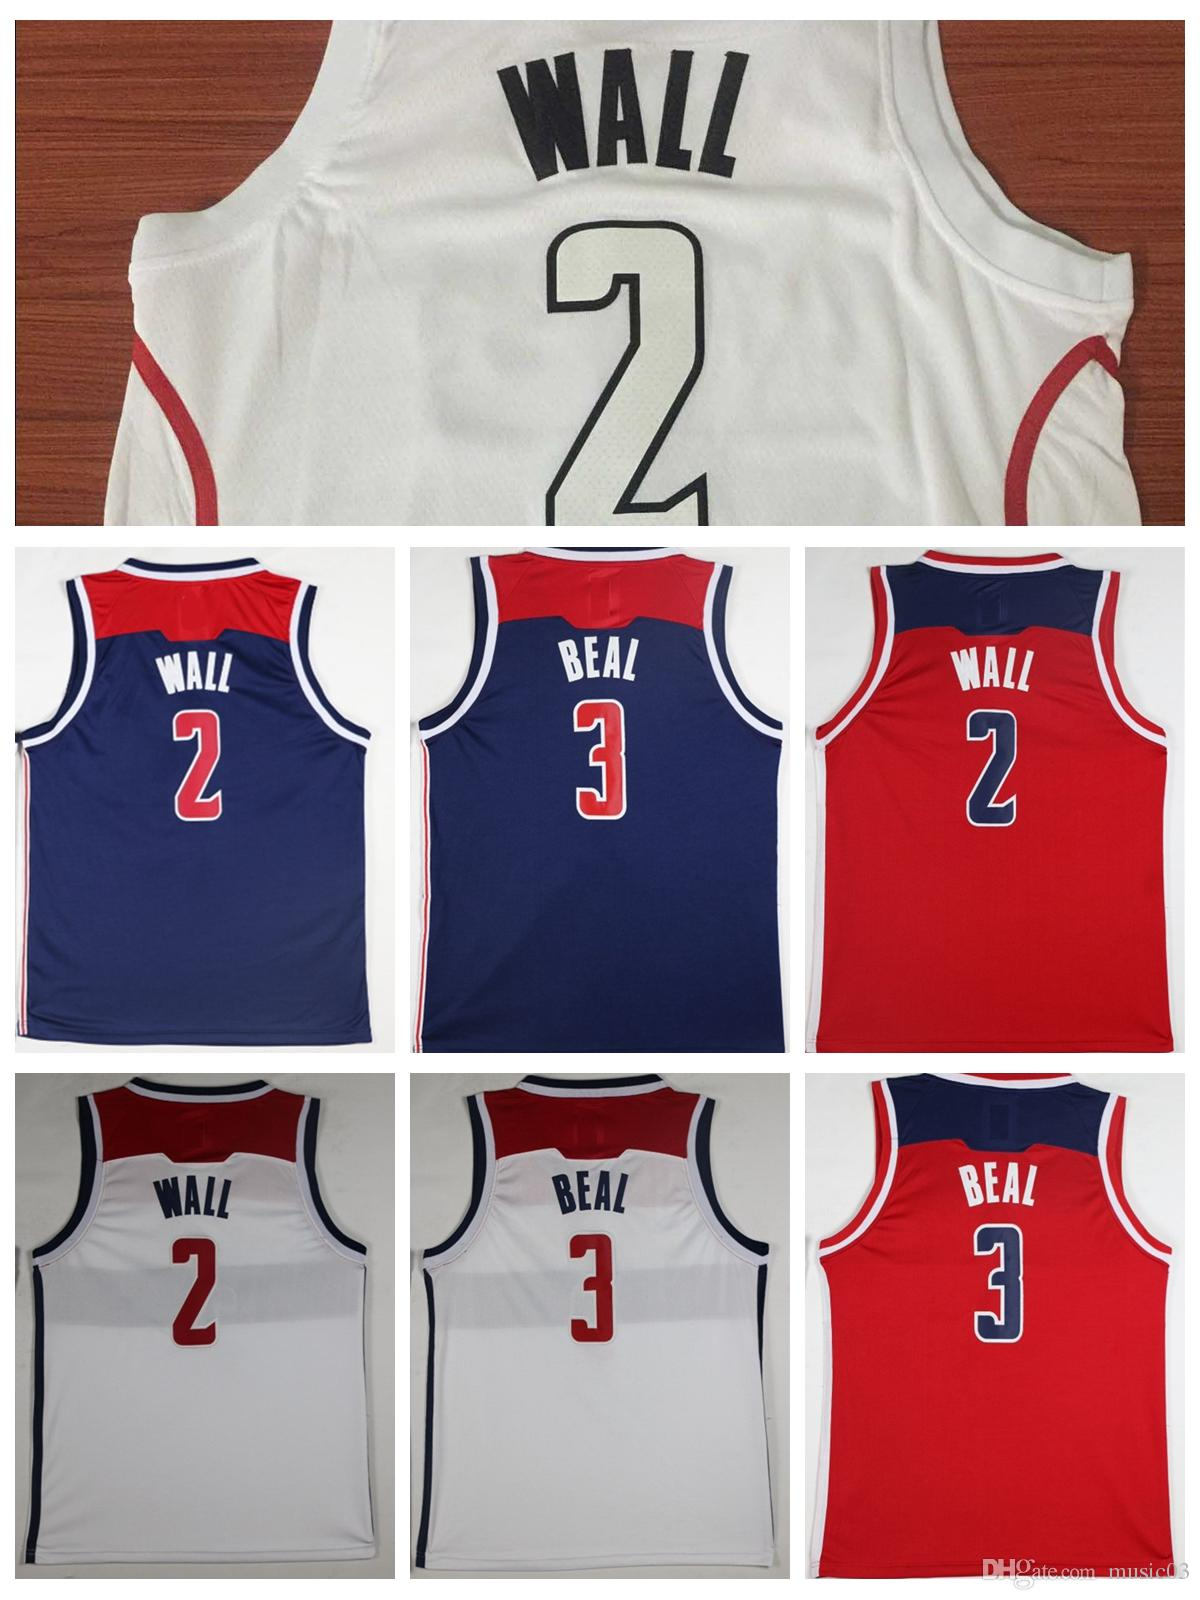 222a8a08c64 ... reduced top men 2018 newest washington wizards jerseys 2 john wall 3 bradley  beal jerseys white